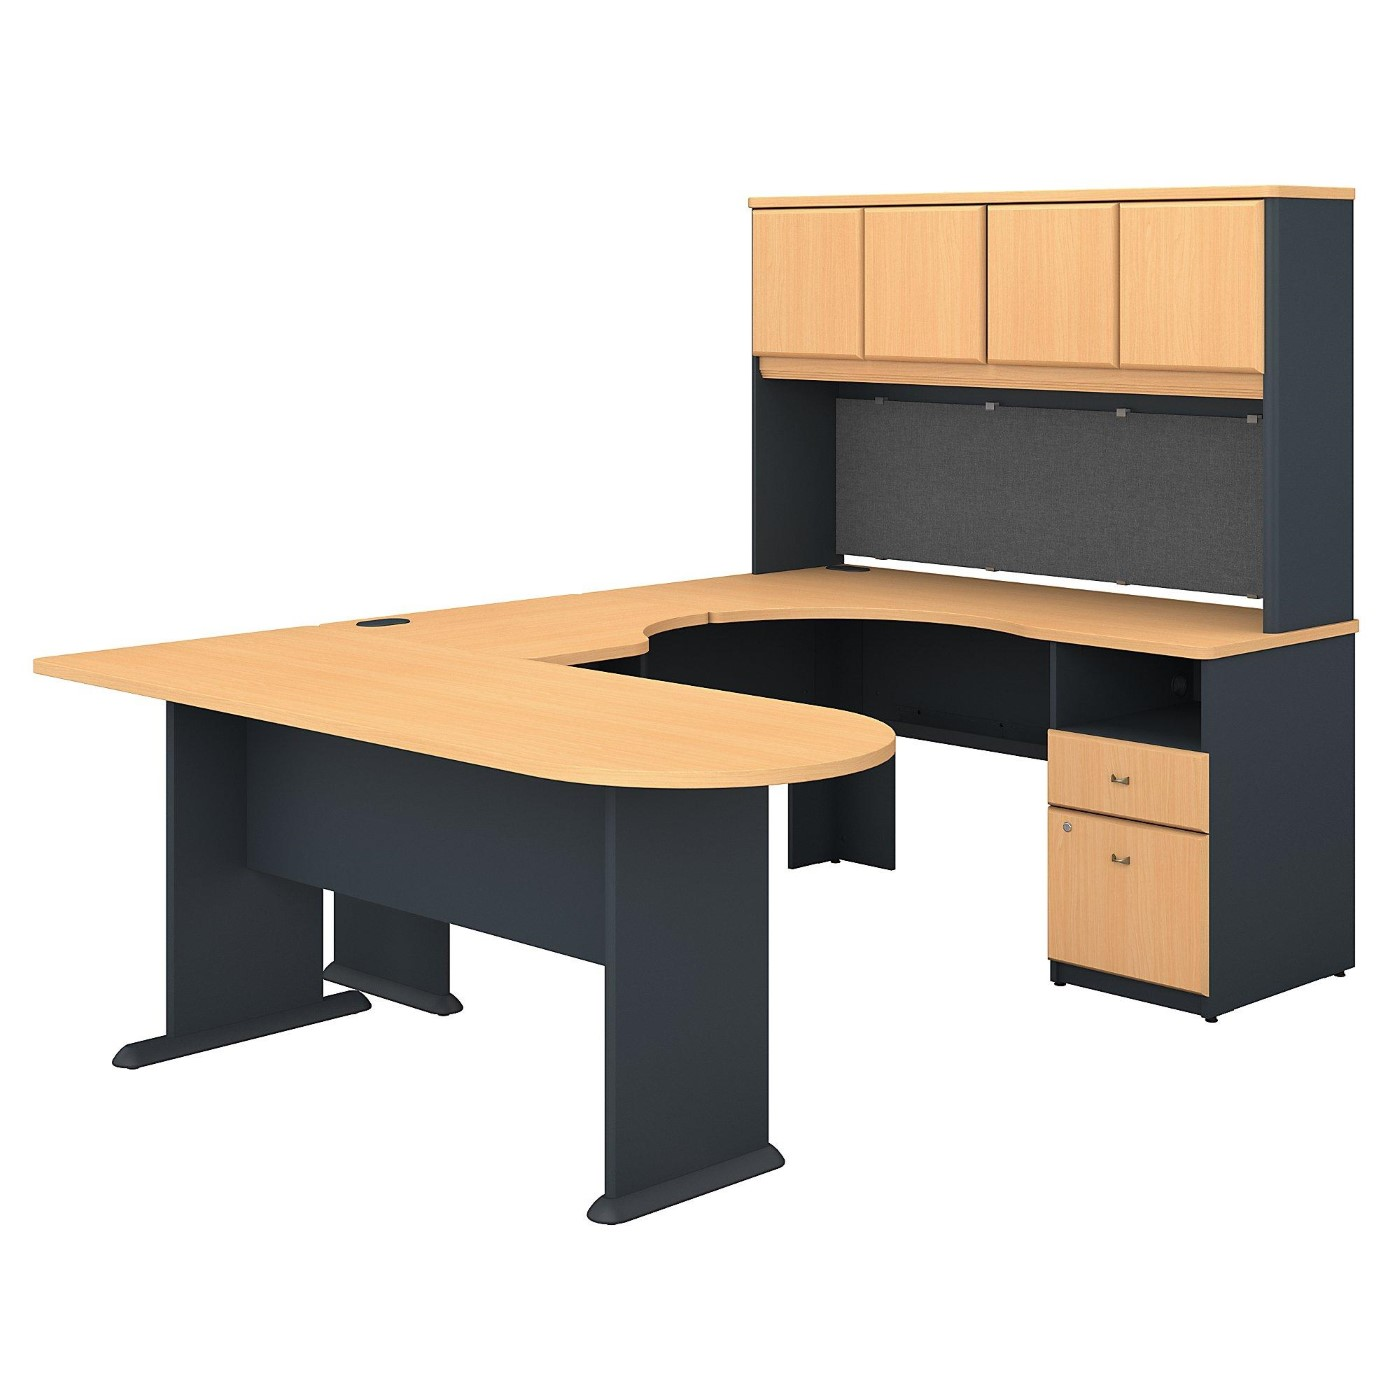 BUSH BUSINESS FURNITURE SERIES A U SHAPED DESK WITH HUTCH, PENINSULA AND STORAGE. FREE SHIPPING.